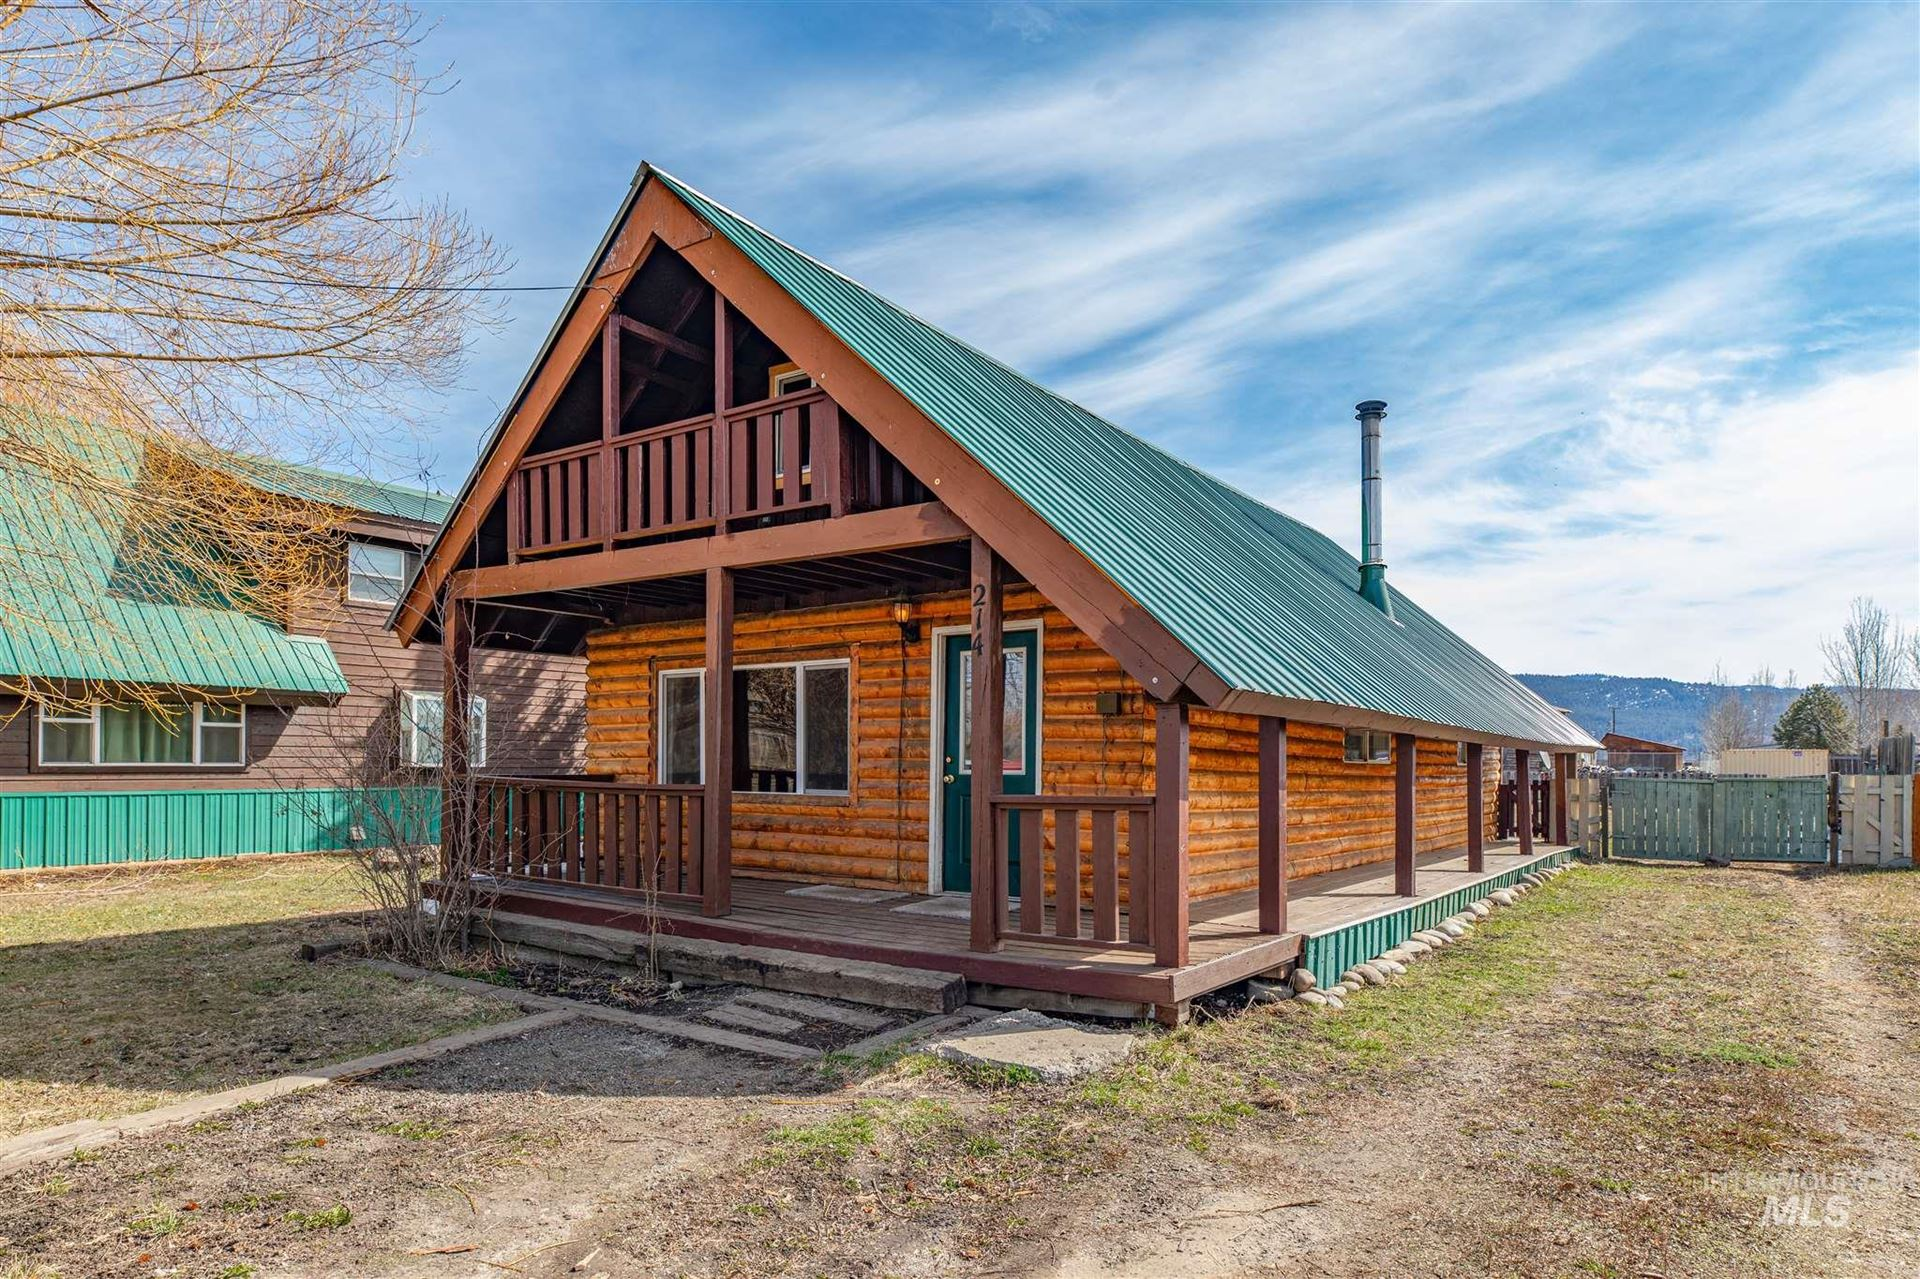 Photo of 214 S Heigho, New Meadows, ID 83654 (MLS # 98799728)